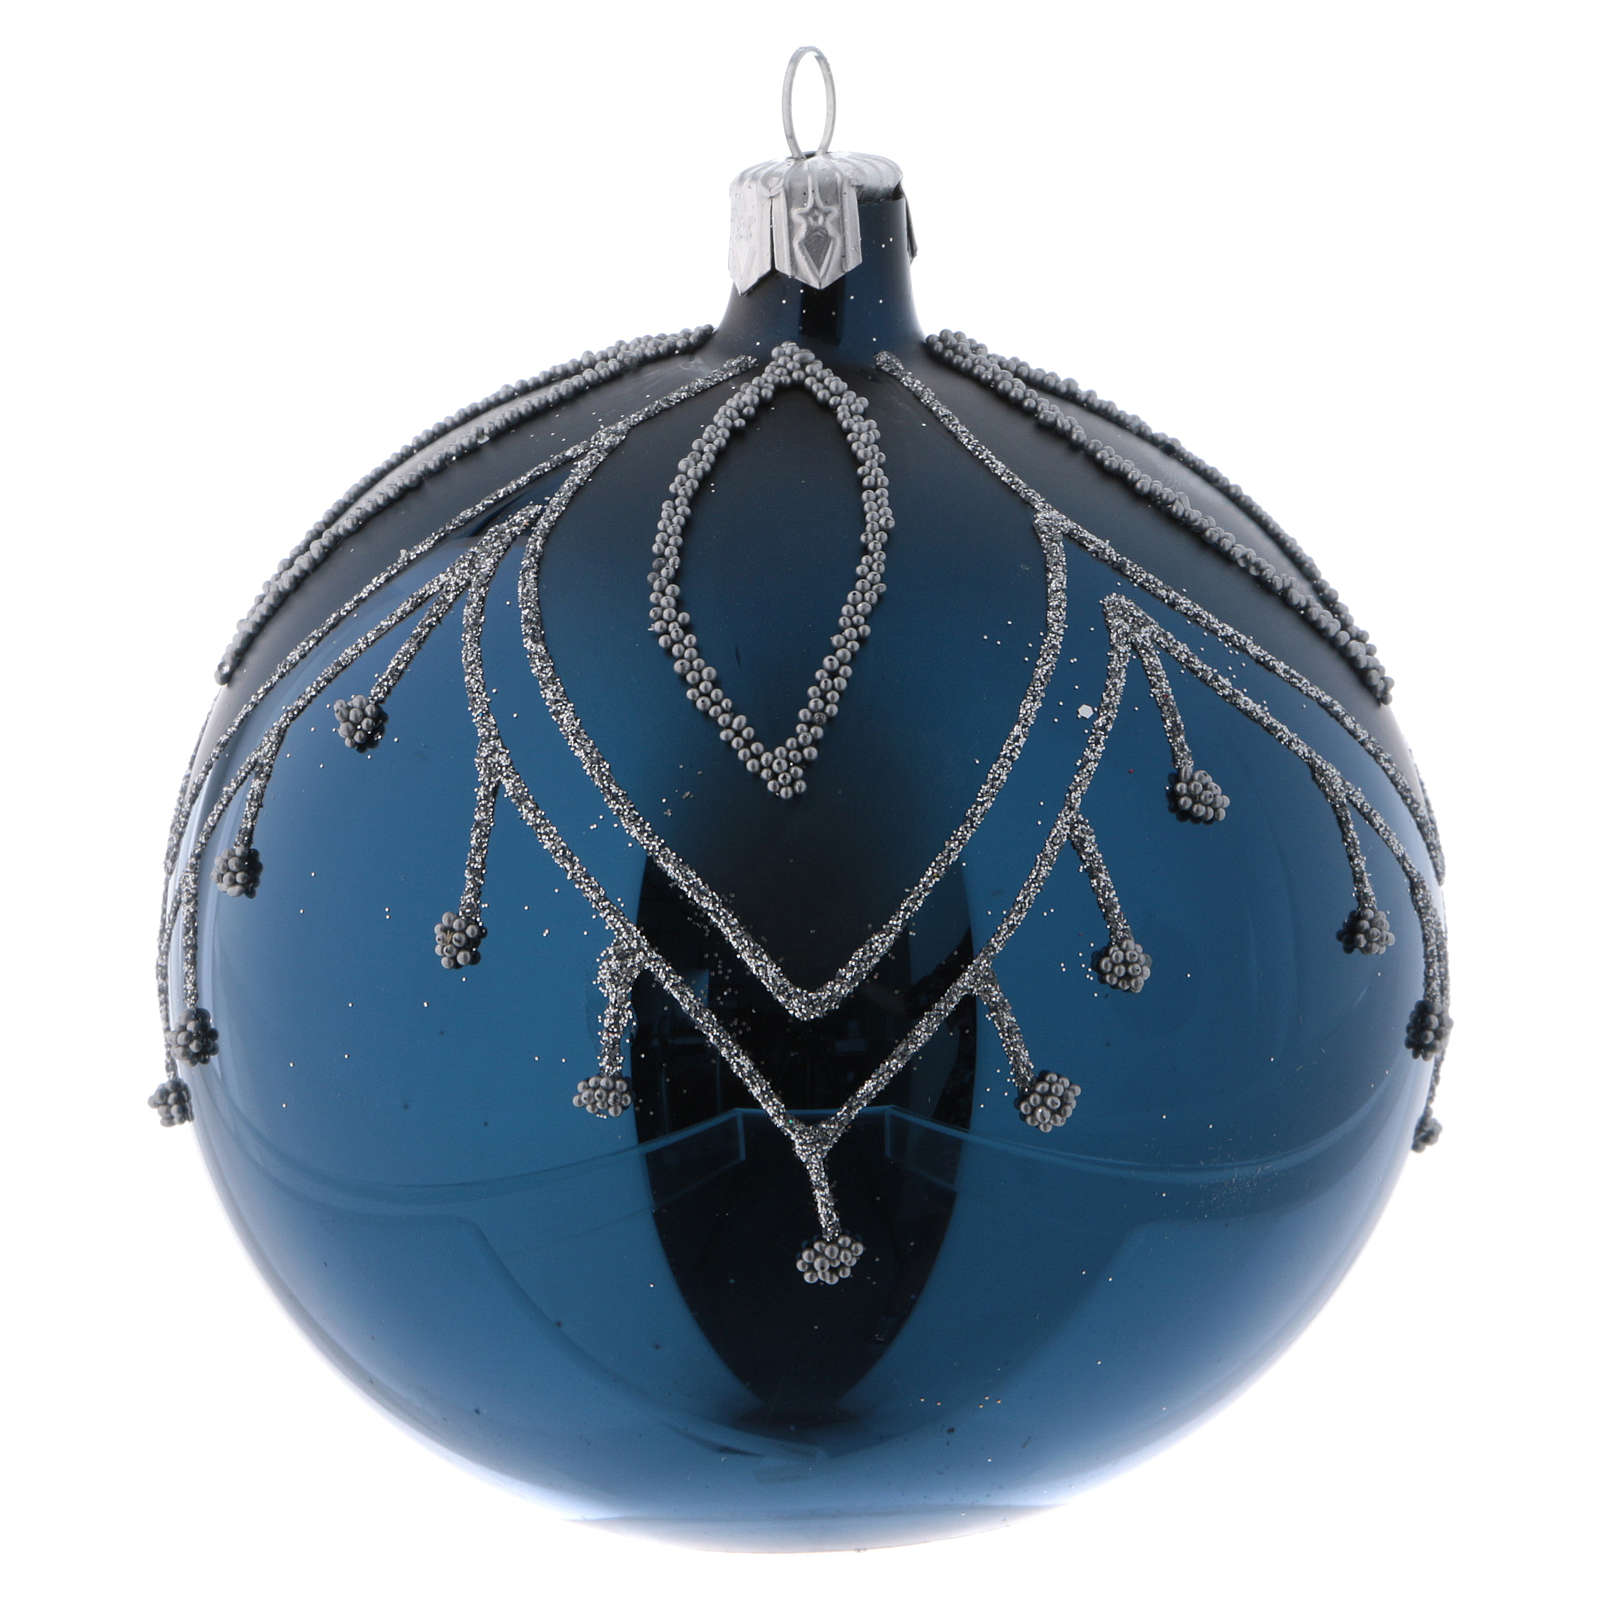 Christmas Balls.Blue Blown Glass Christmas Balls With Silver Glitter 10 Cm 4 Pcs